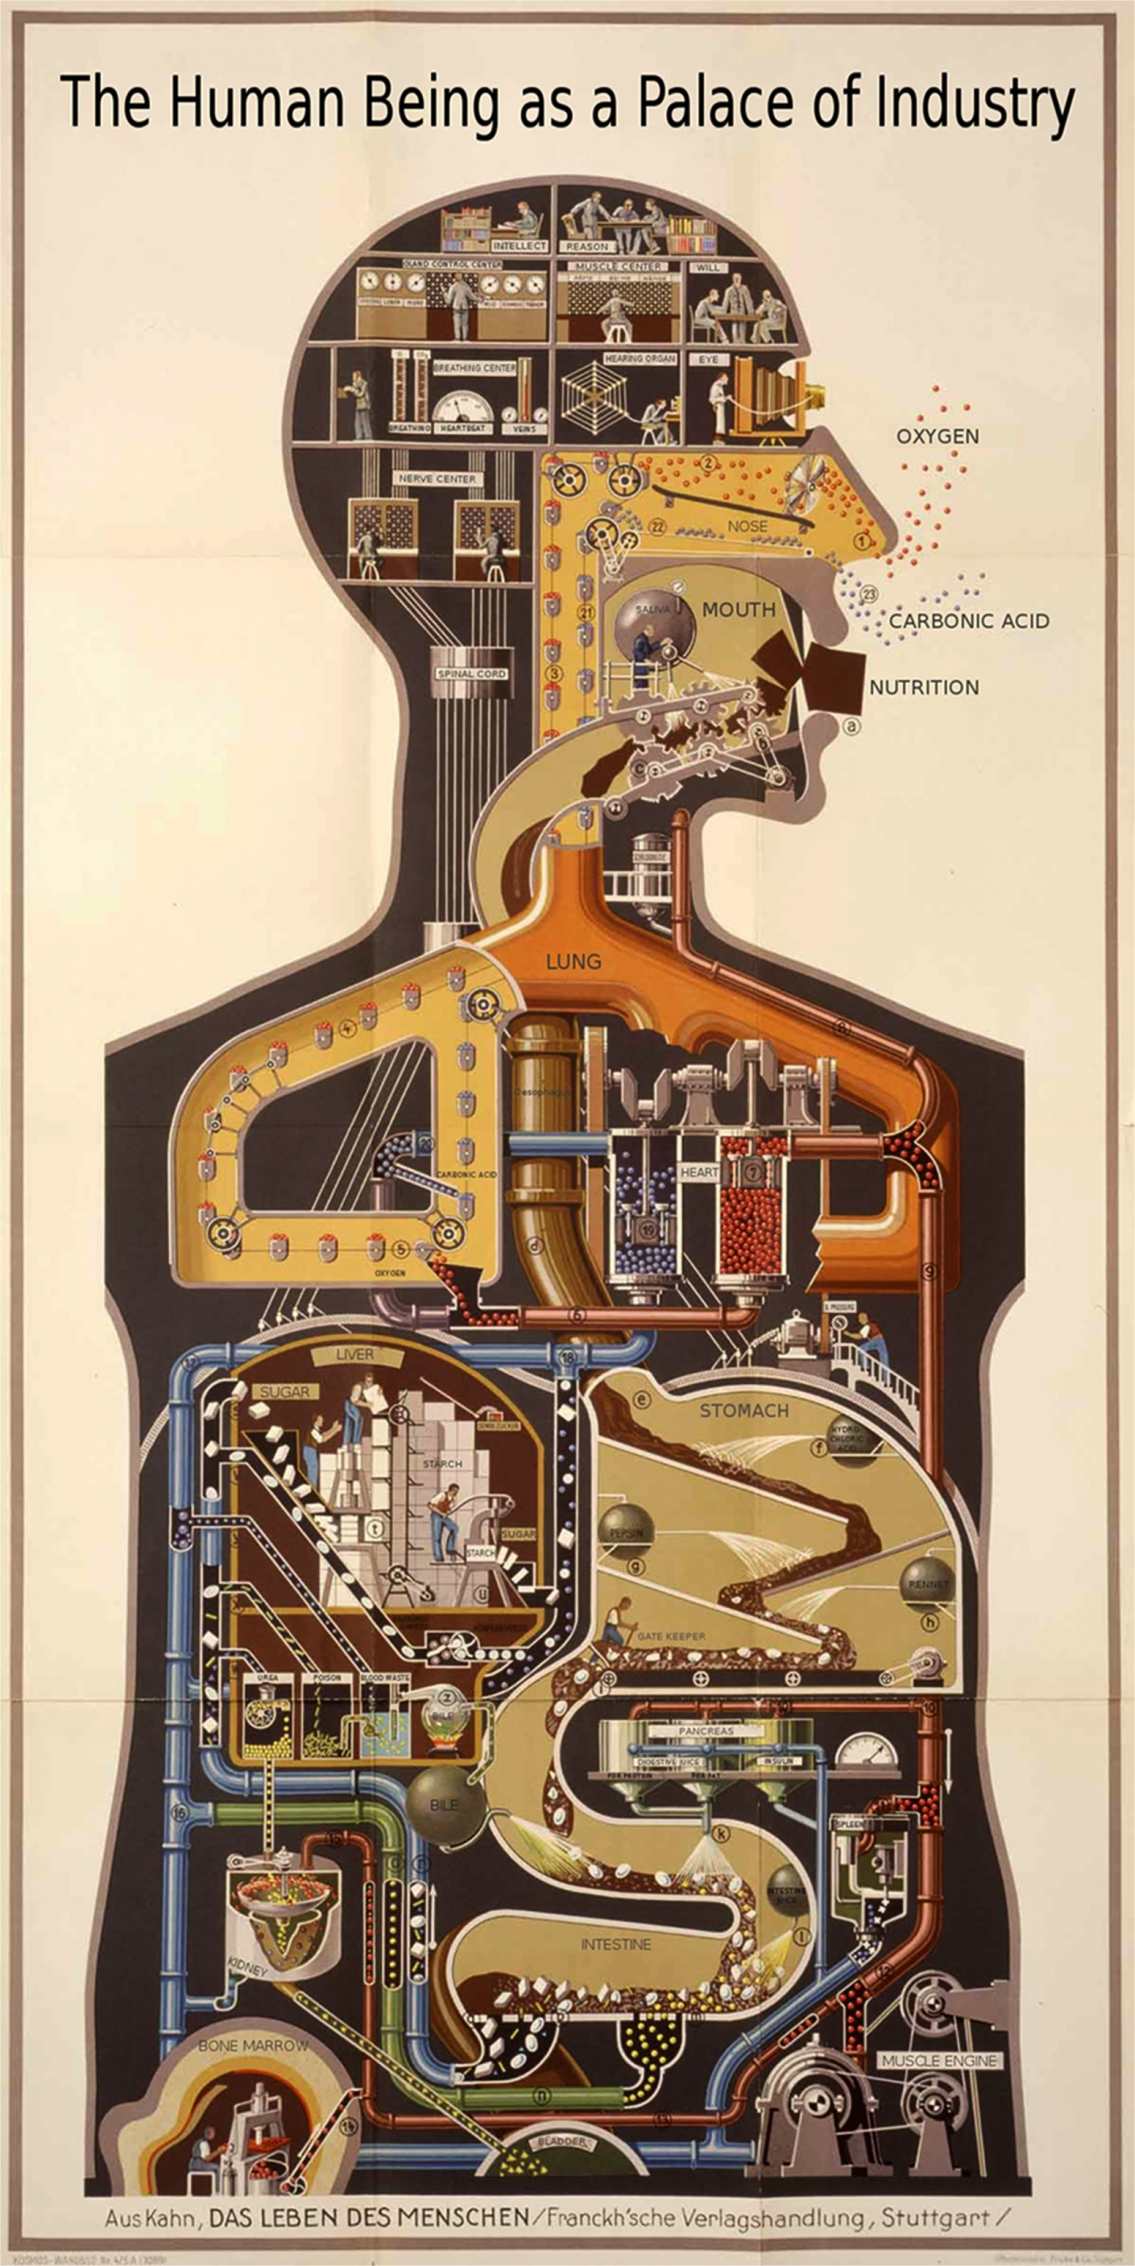 Man as Industrial Palace Vintage Infographic